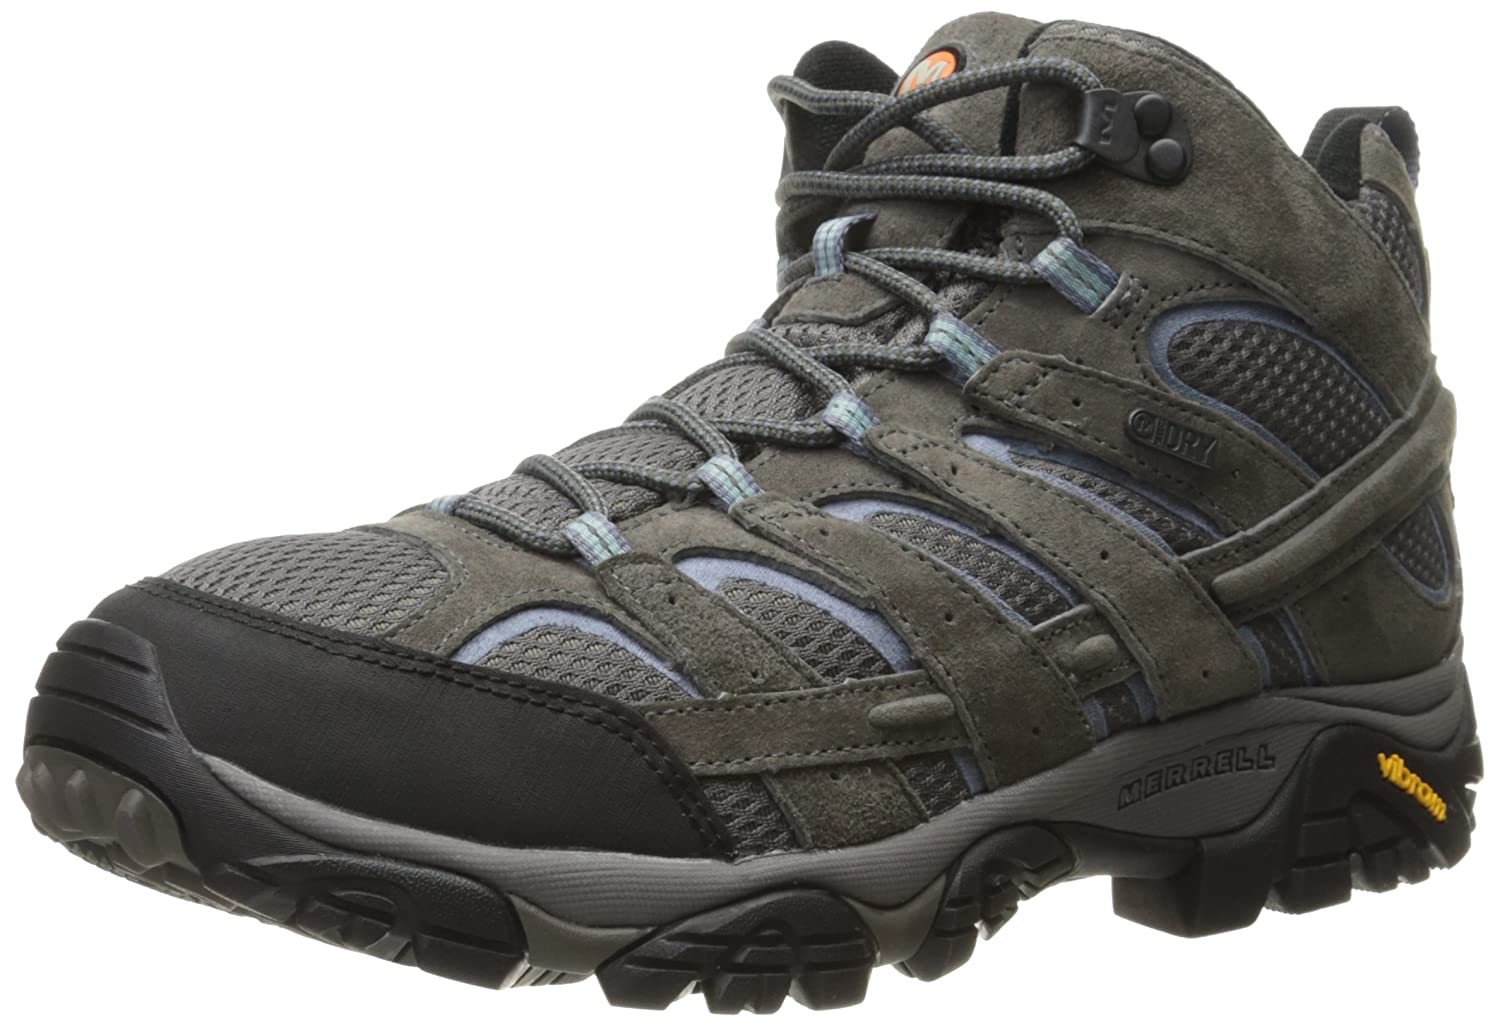 Merrell Women's Moab 2 Mid Waterproof Hiking Boot B01HFL9IA4 6 W US|Granite